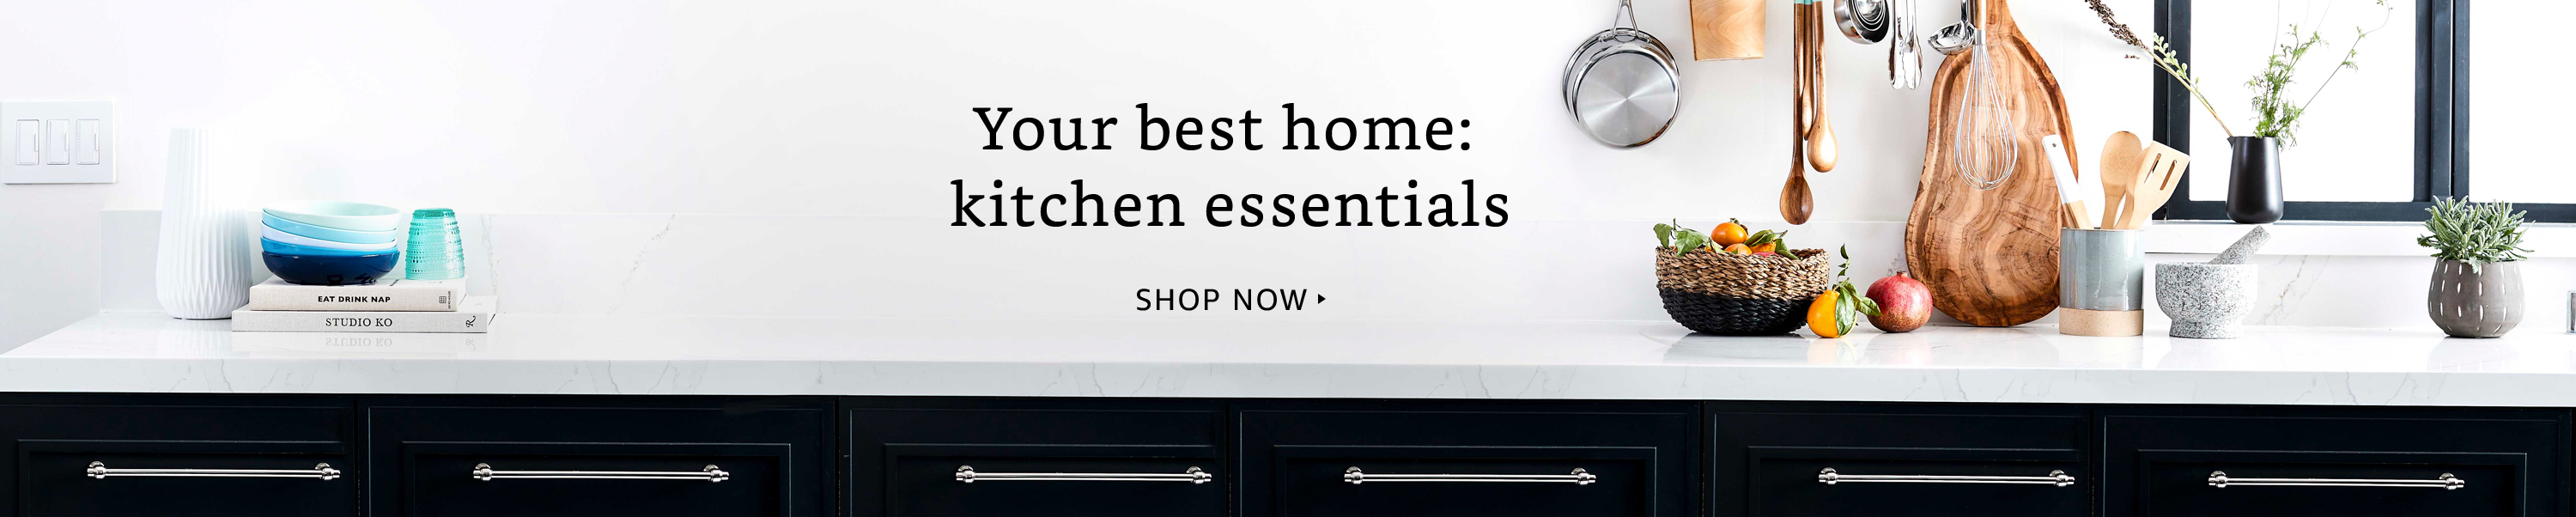 Your best home: kitchen essentials